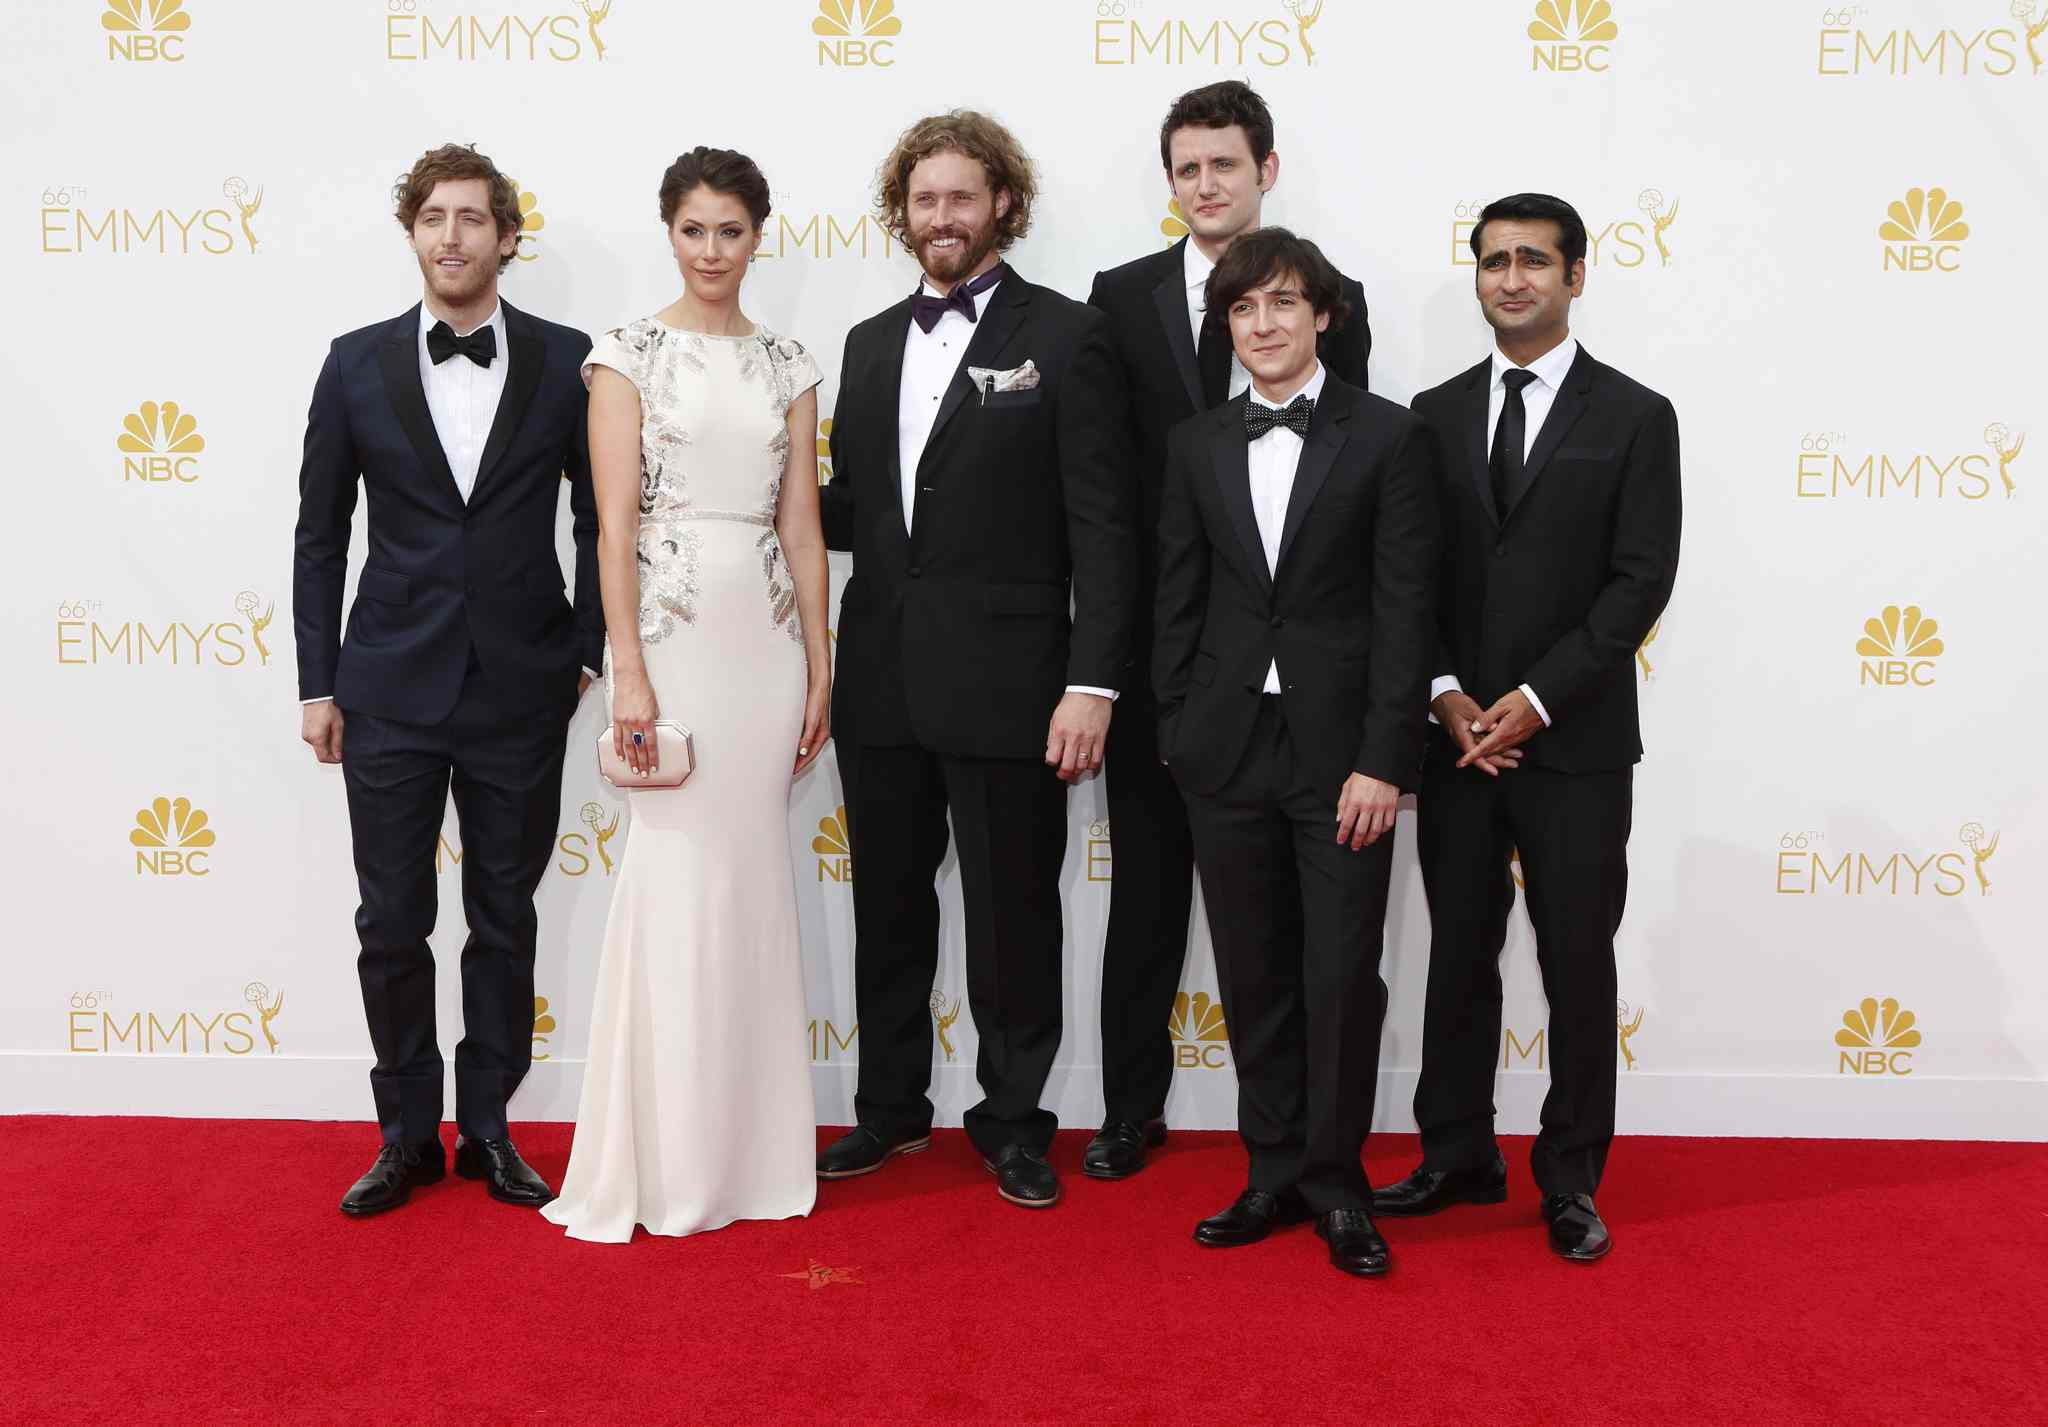 The cast of HBO's Silicon Valley arrives for the 66th Annual Primetime Emmy Awards at Nokia Theatre at L.A. Live in Los Angeles.